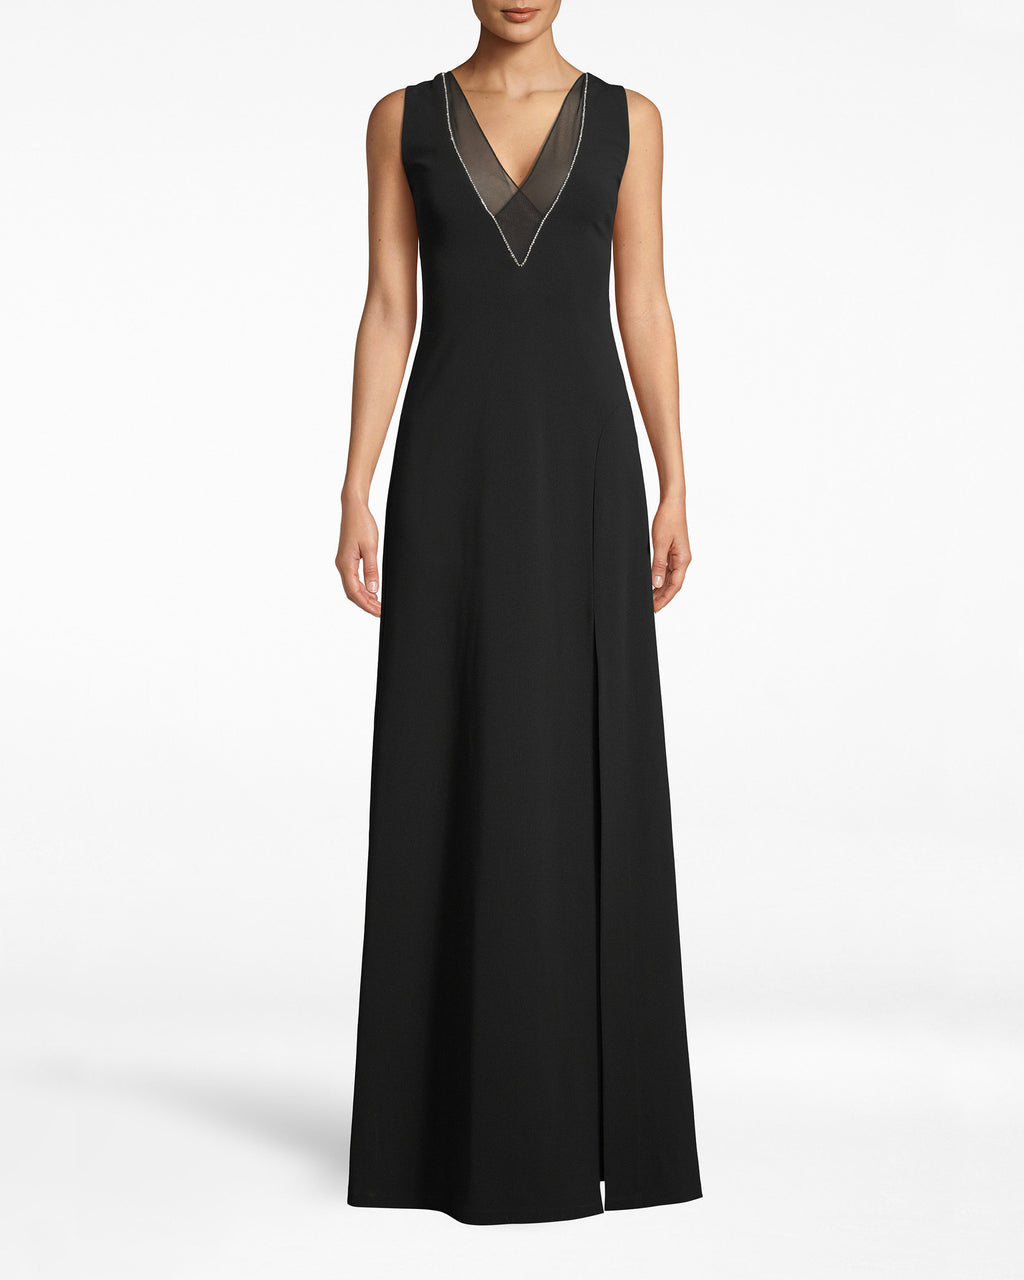 CH10063 - STRUCTURED HEAVY JERSEY V-NECK SLIT GOWN - dresses - long - Special occasions welcome. Dress up with this deep v-neck gown, which features a structured necklineembroidered with white. The leg slit adds a hint of rebellion. Exposed back zipper for closure.